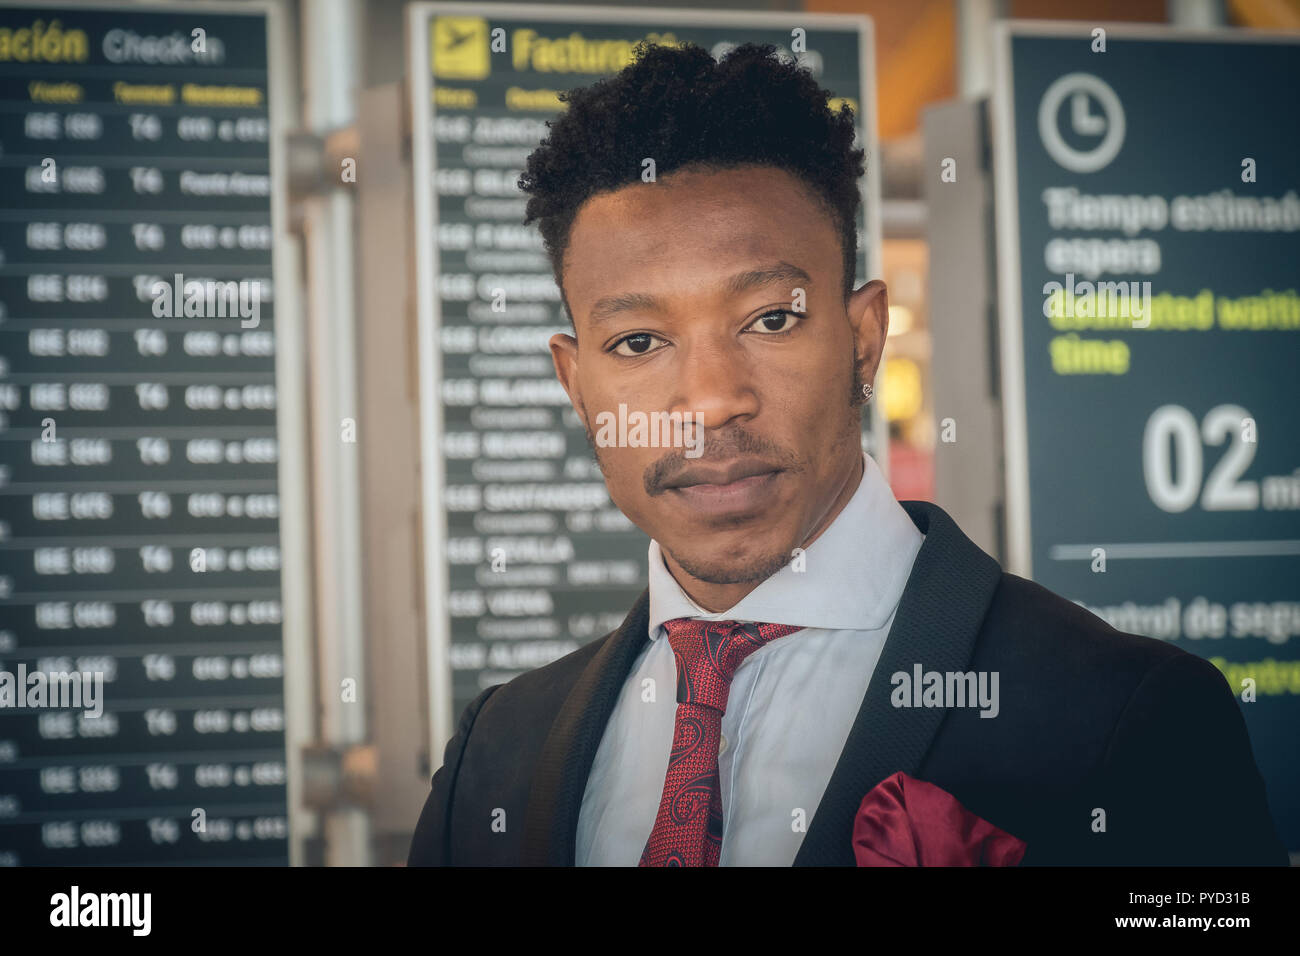 Close up of one young and attractive black businessman smiling in the airport terminal in front of the departures information displays. He is wearing  - Stock Image